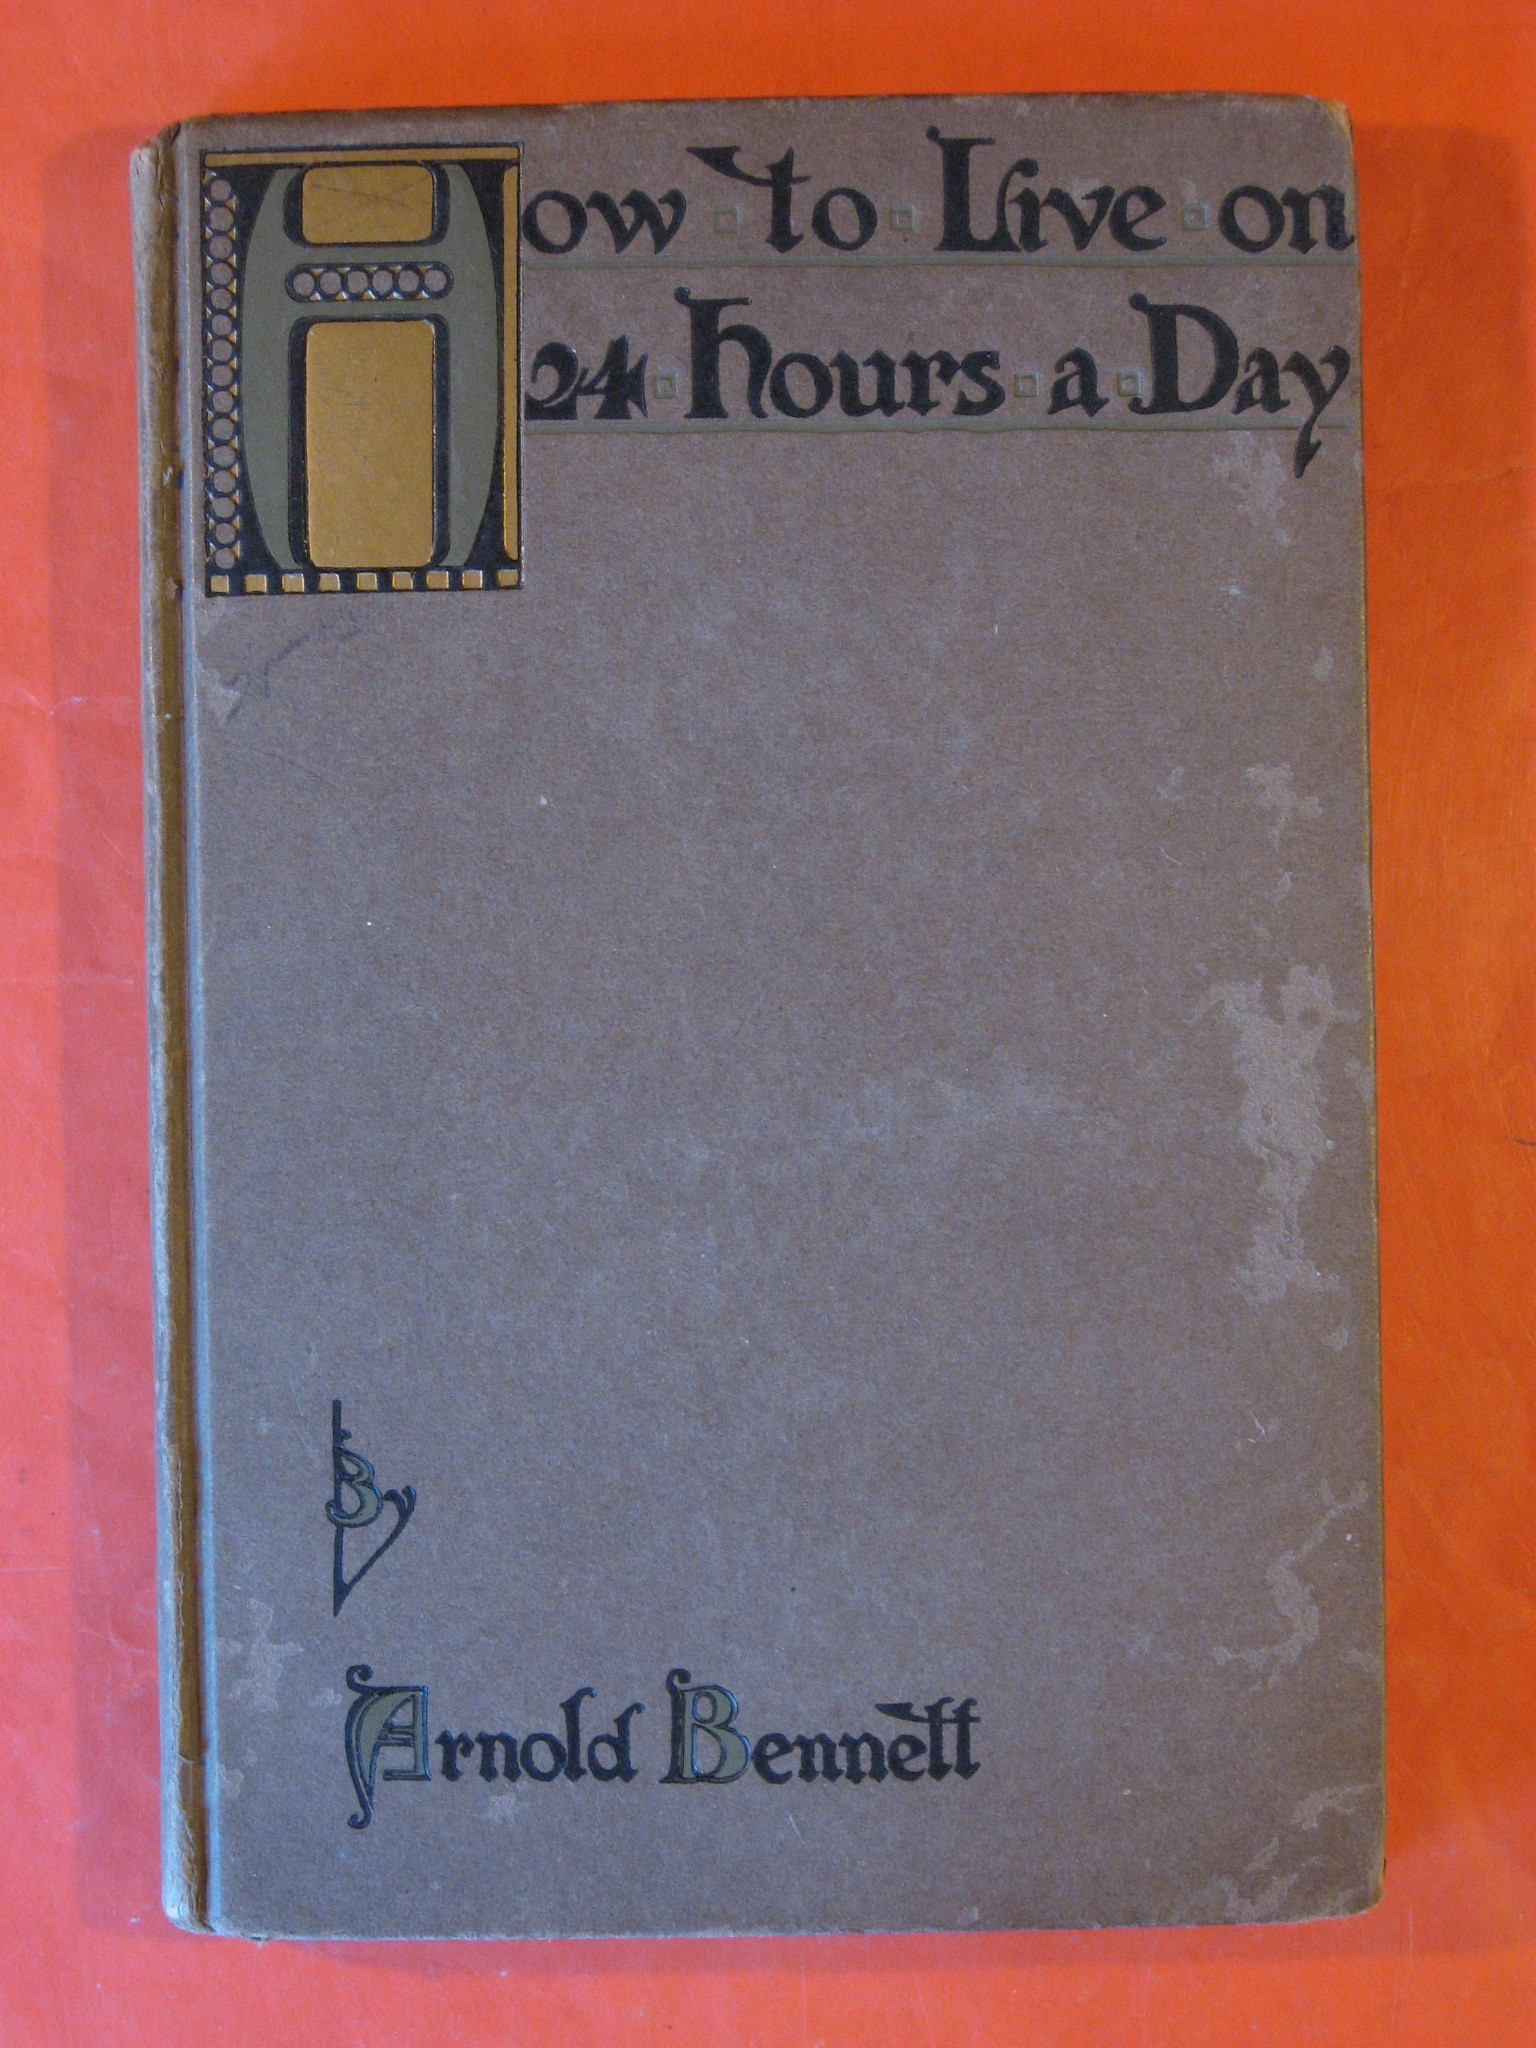 How to Live On 24 Hours a Day, Bennett, Arnold